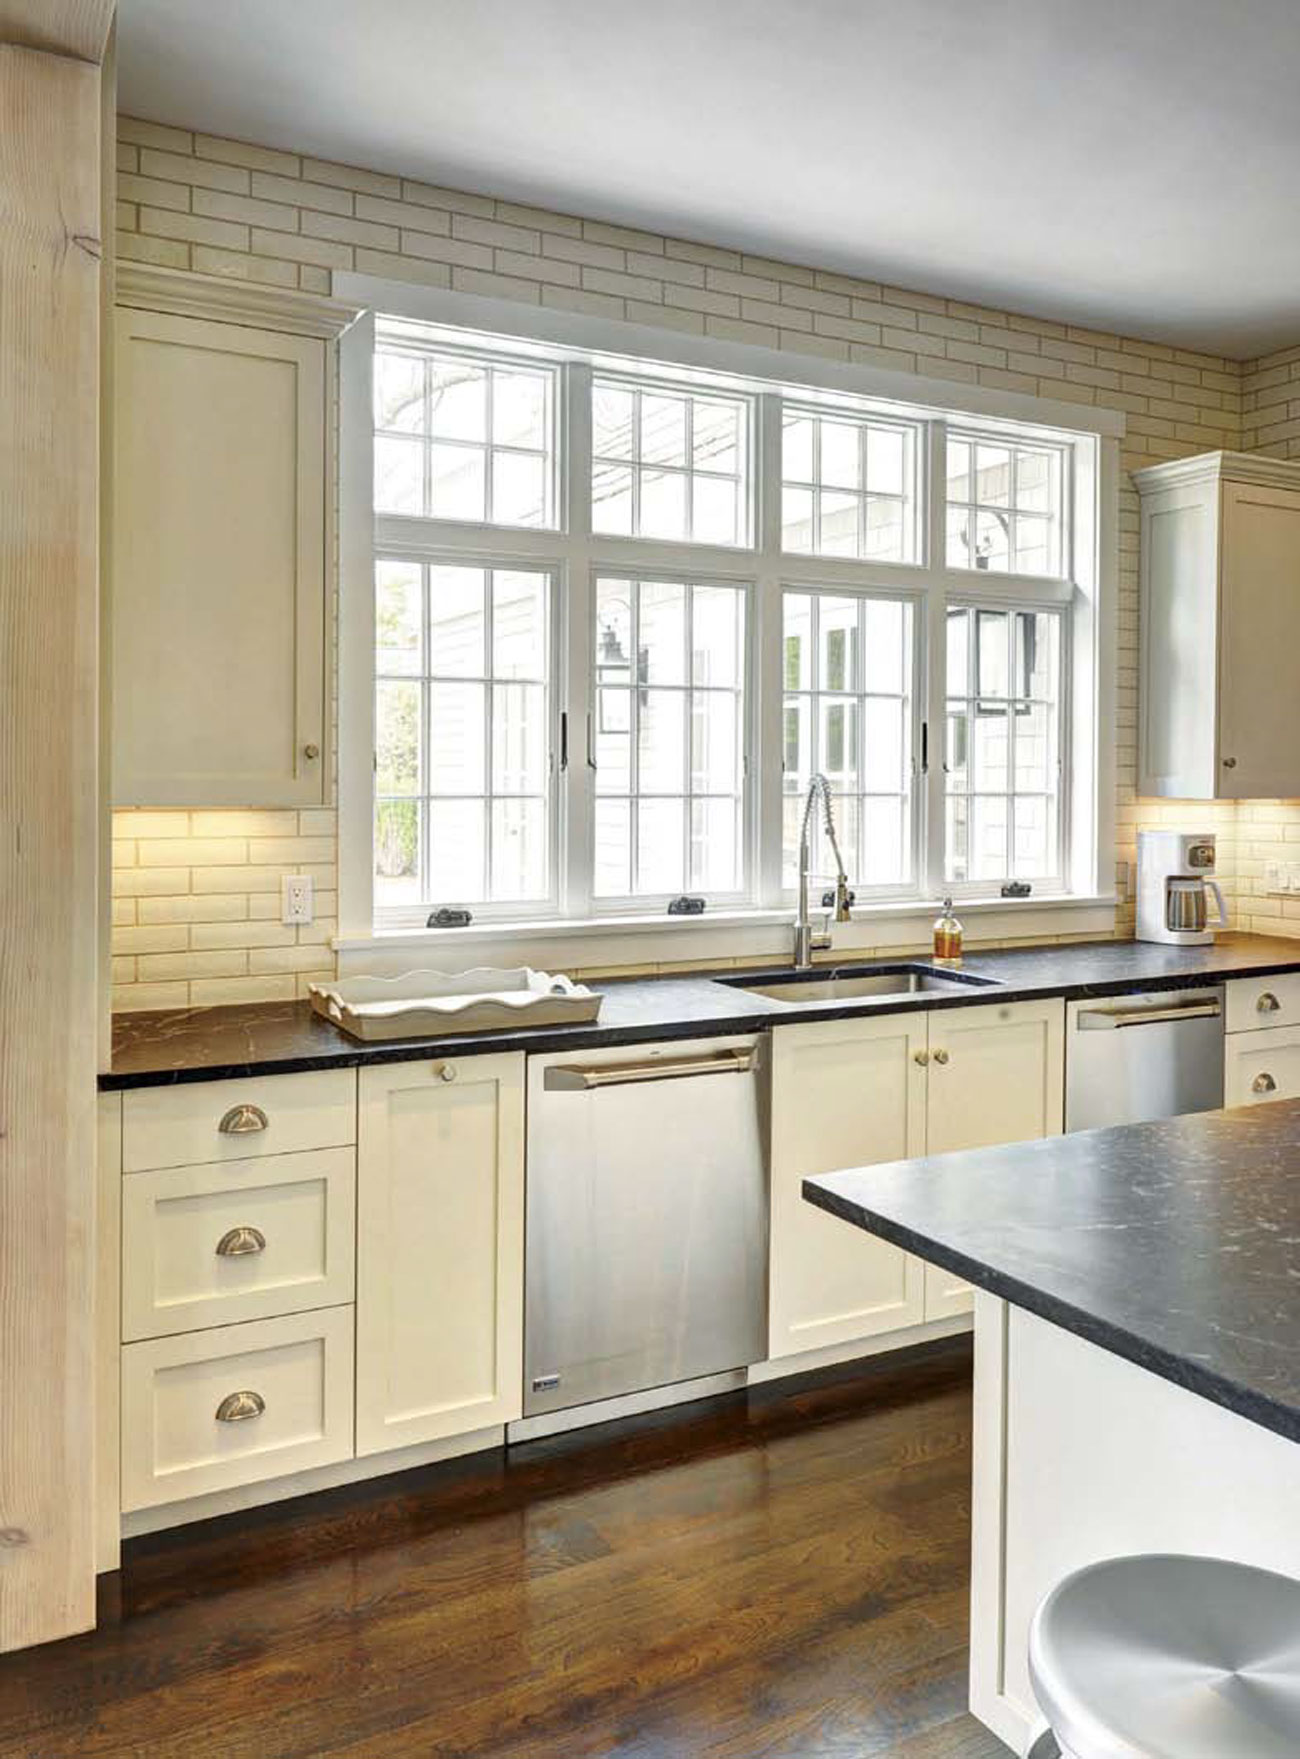 Photo of a kitchen over the island toward the kitchen sink and windows for a gorgeous view.